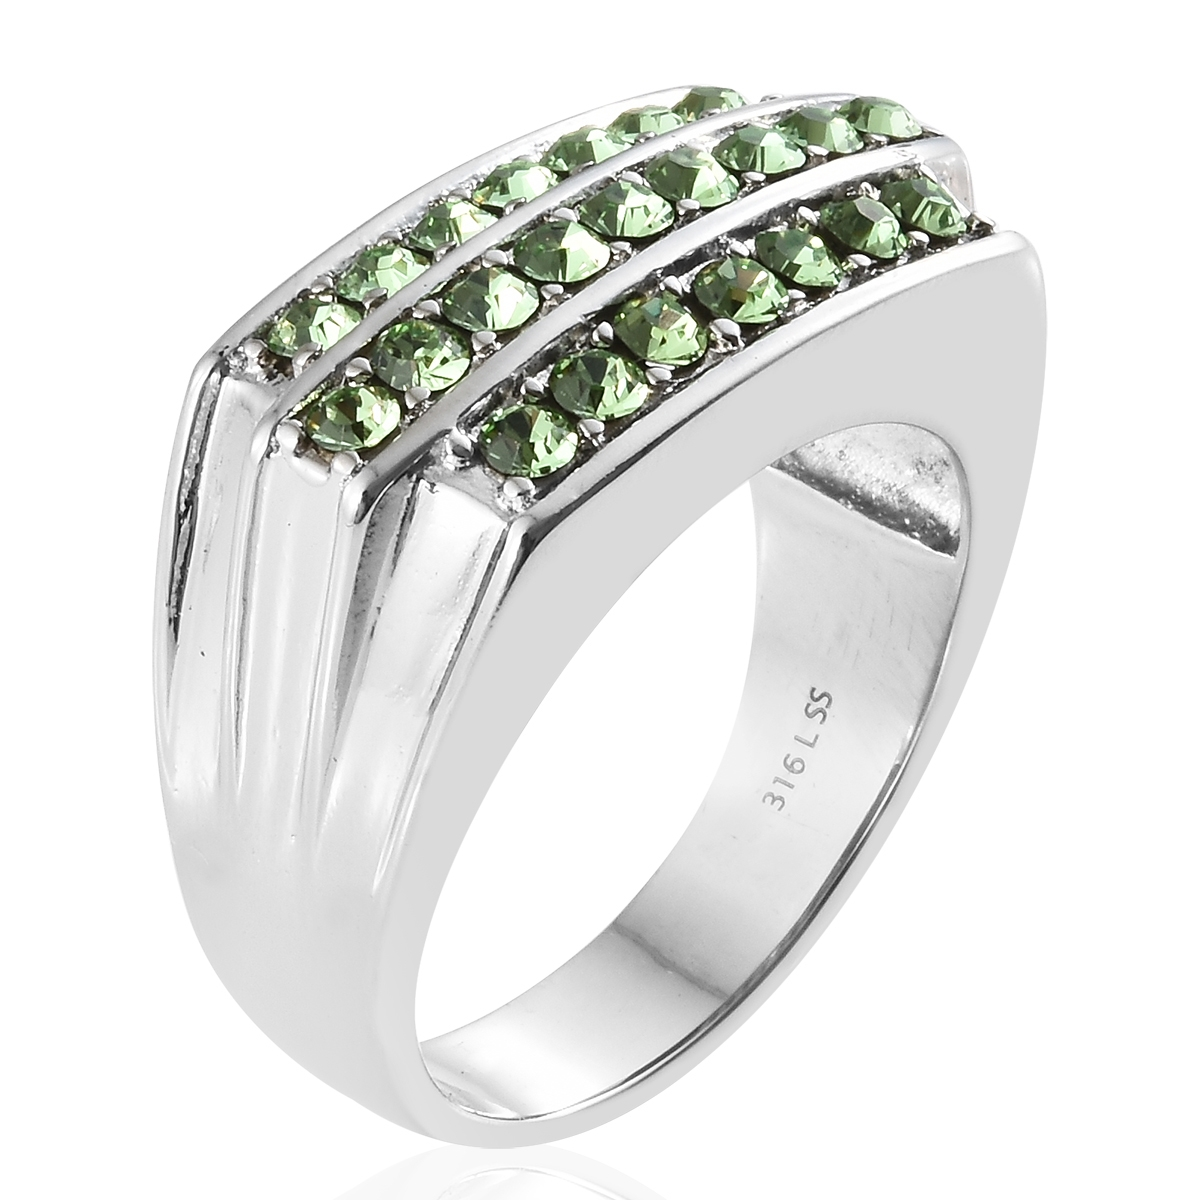 e33102b6e98d ... Stainless Steel Men s Ring (Size 12.0) Made with SWAROVSKI Peridot  Crystal ...